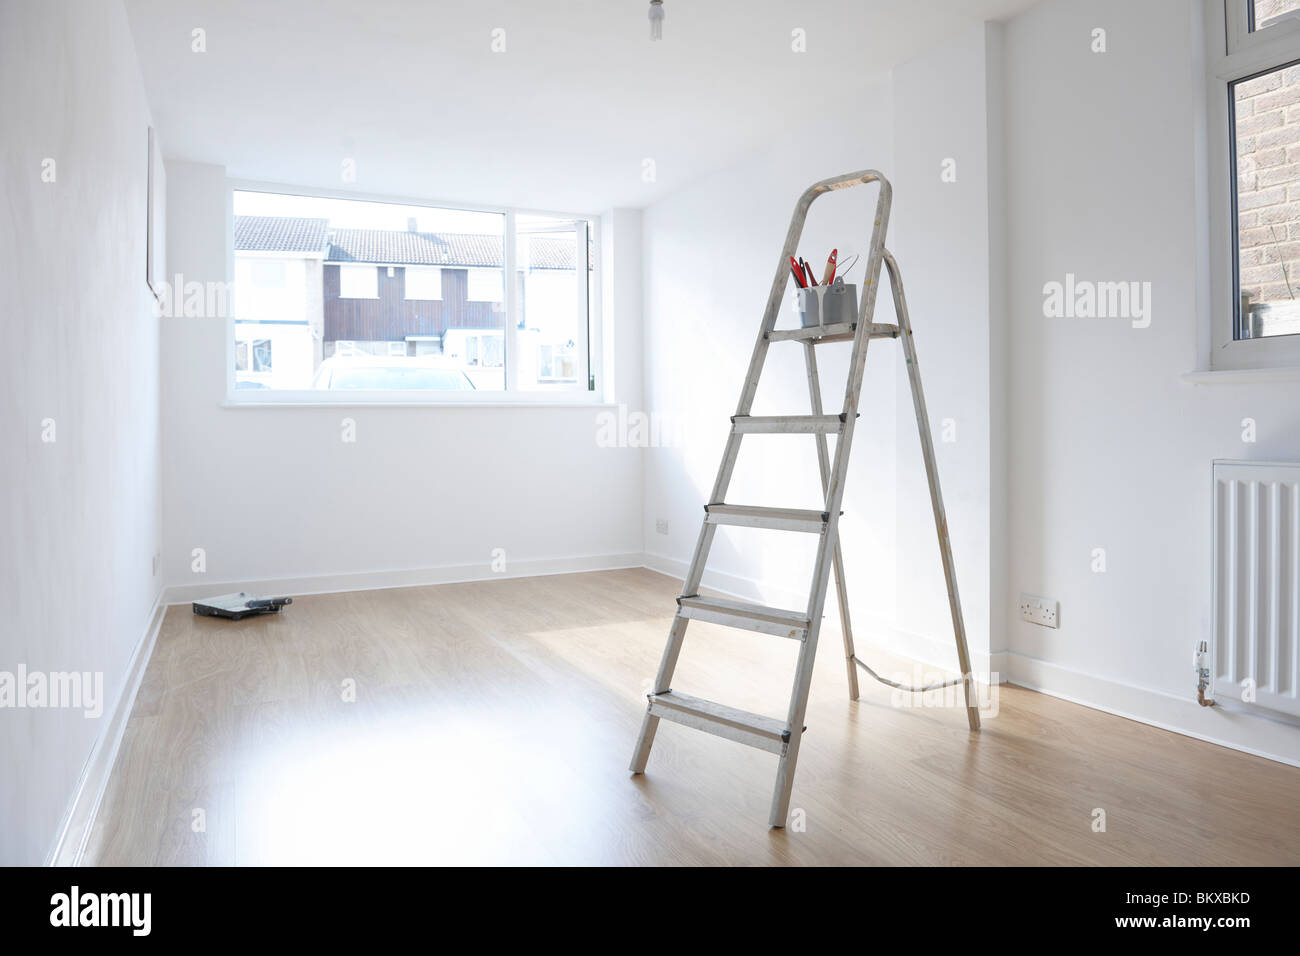 ladder with paint pot and brushes standing in empty room - Stock Image